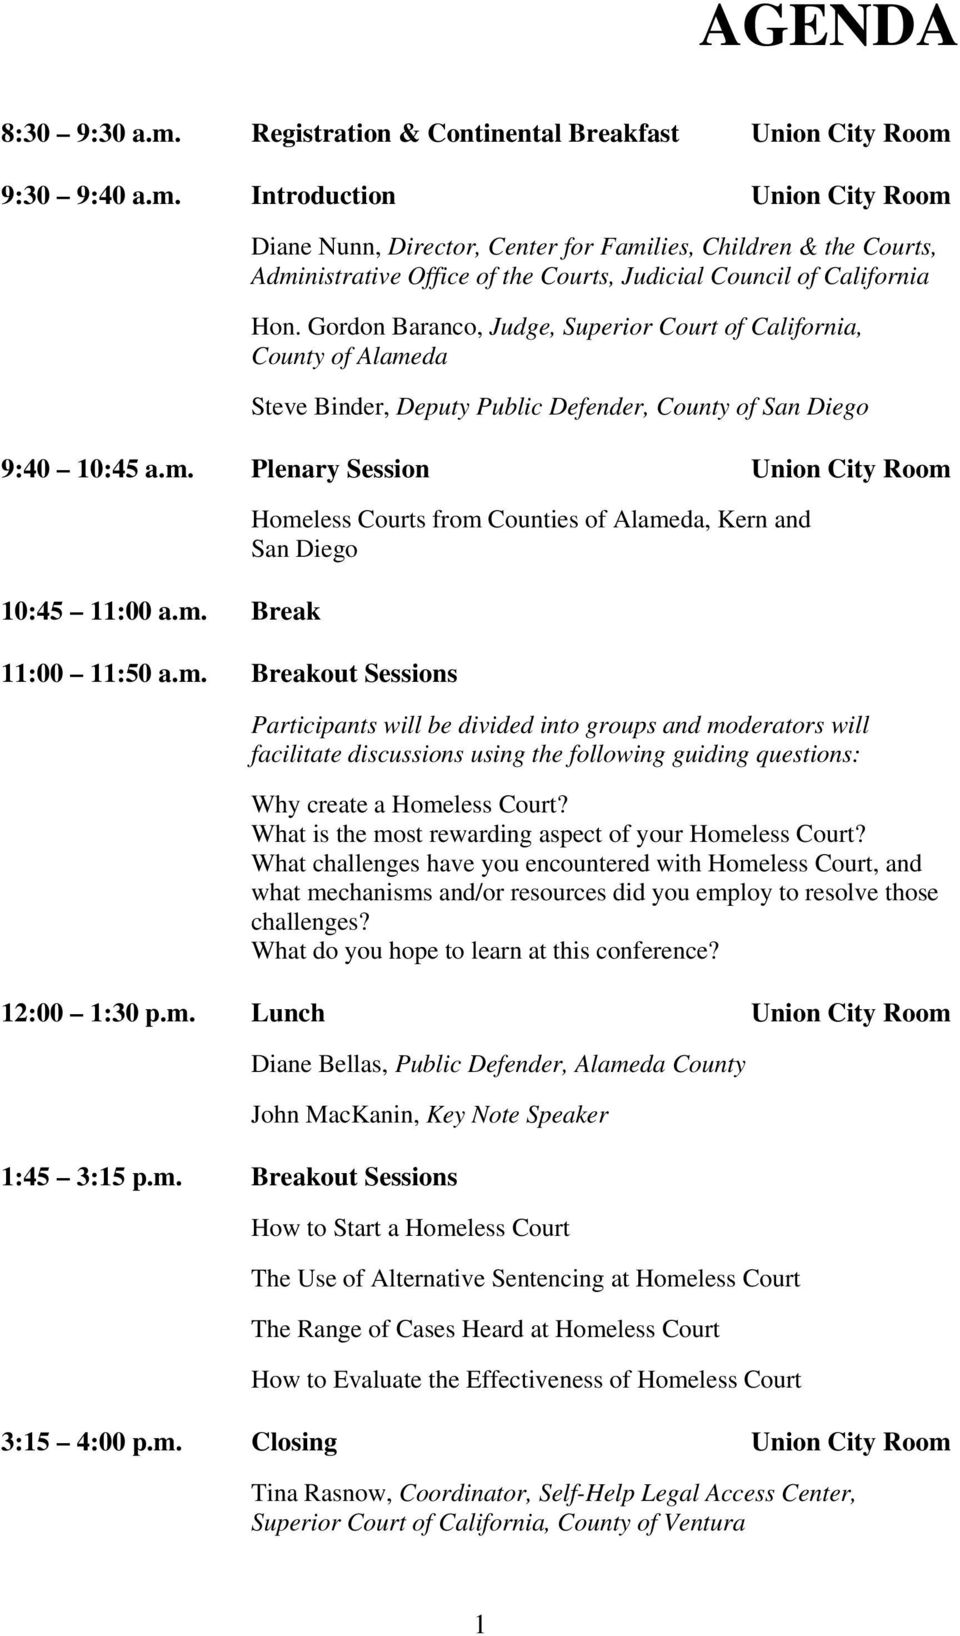 m. Breakout Sessions Homeless Courts from Counties of Alameda, Kern and San Diego Participants will be divided into groups and moderators will facilitate discussions using the following guiding